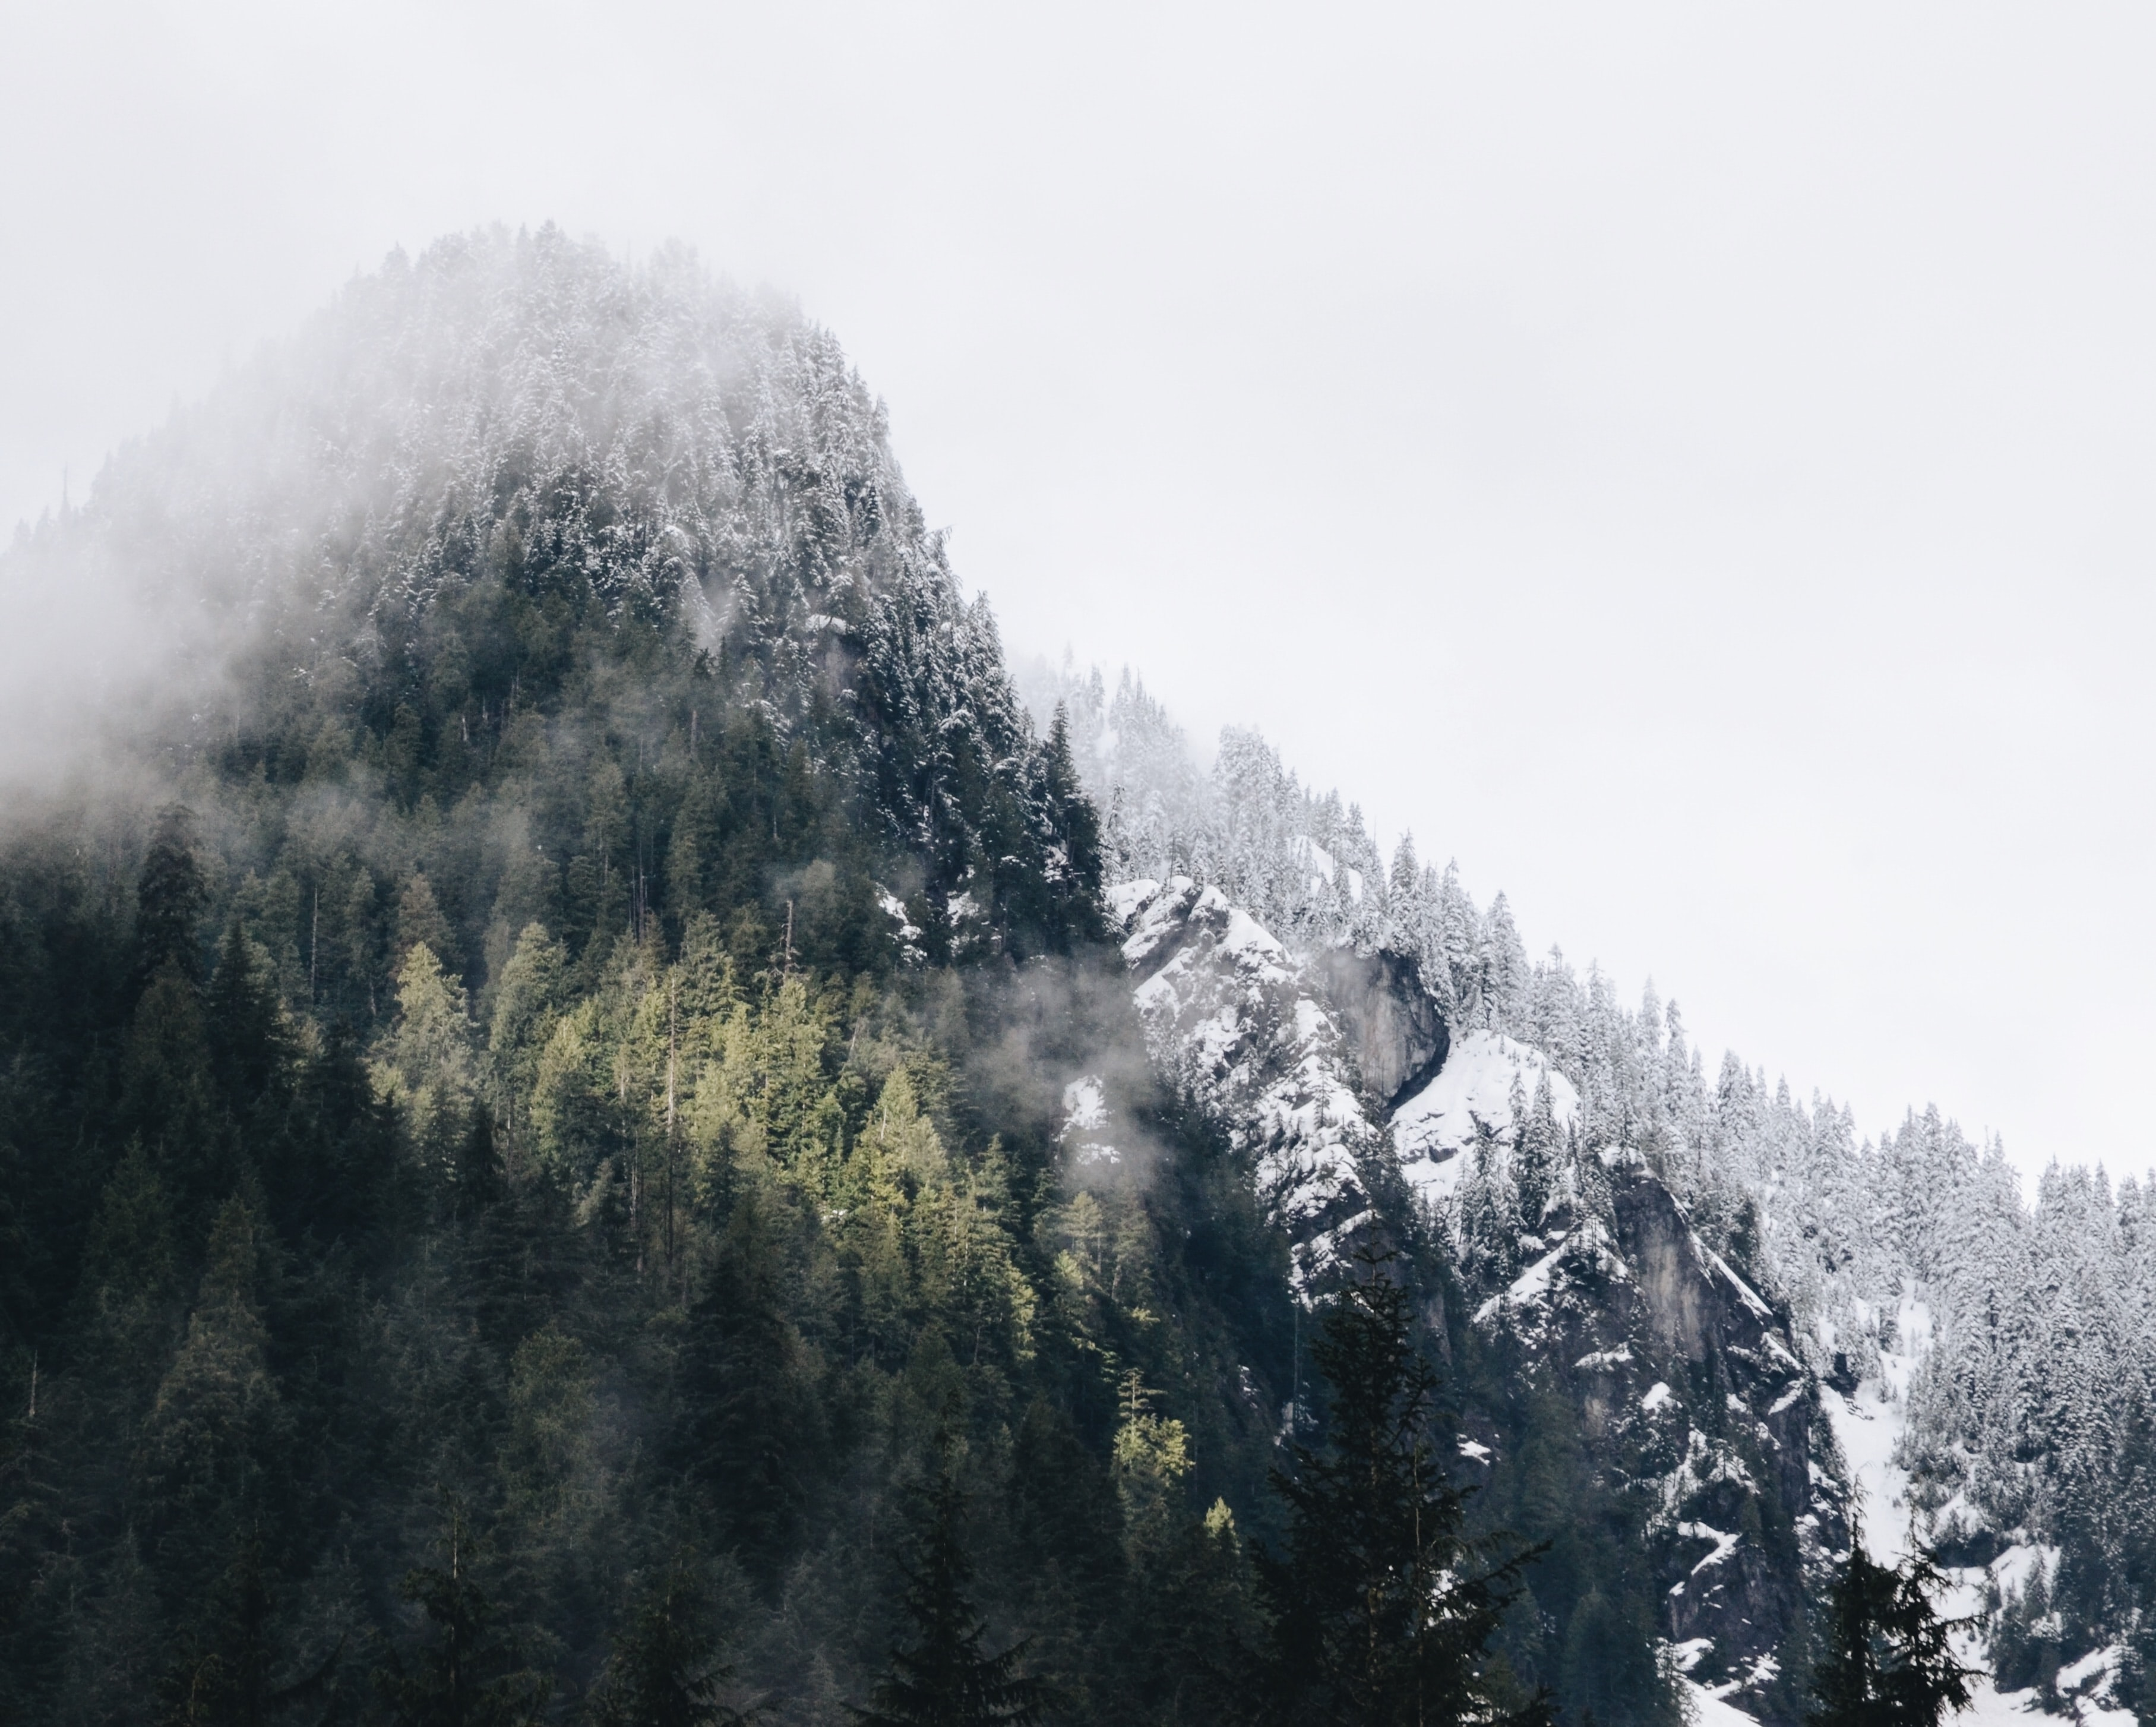 A mountain with its slopes covered in evergreen trees near North Vancouver